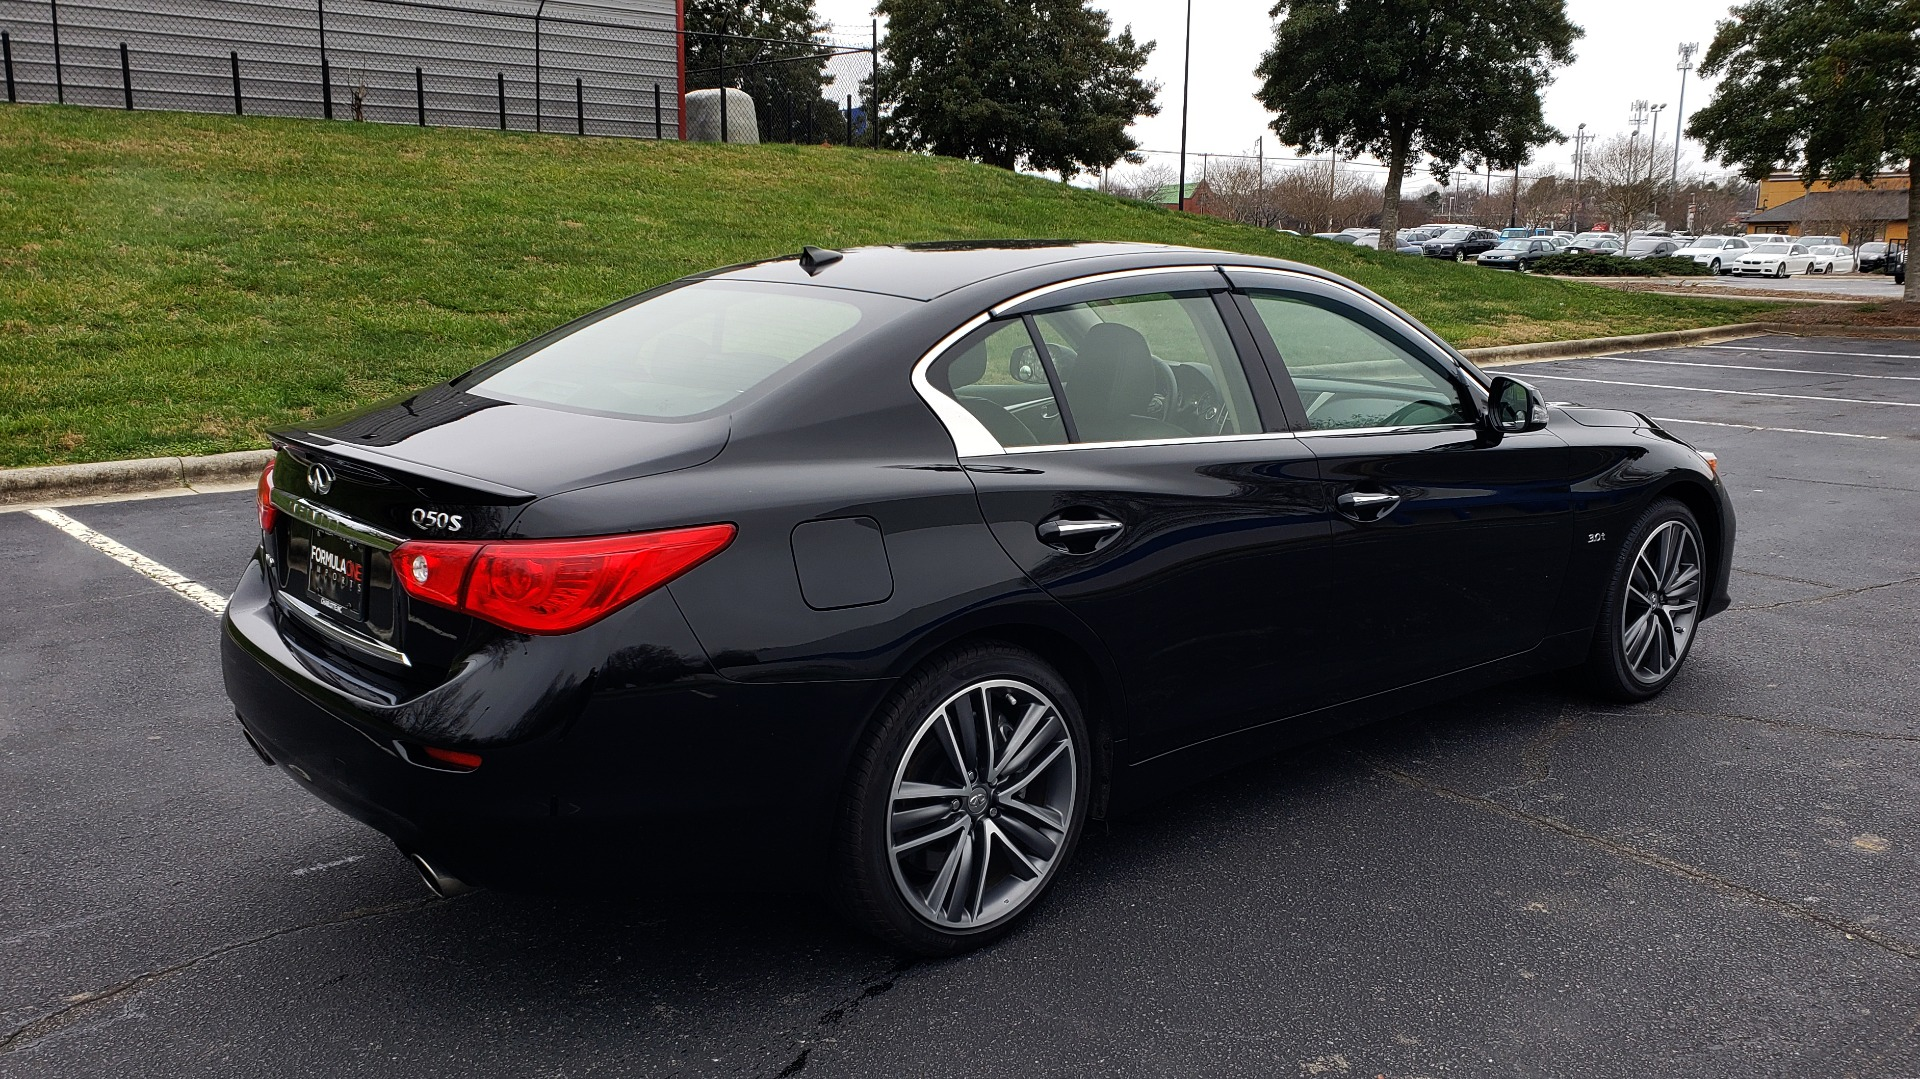 Used 2016 INFINITI Q50 3.0t PREMIUM SPORT AWD / NAV / SUNROOF / HTD STS / REARVIEW for sale Sold at Formula Imports in Charlotte NC 28227 8